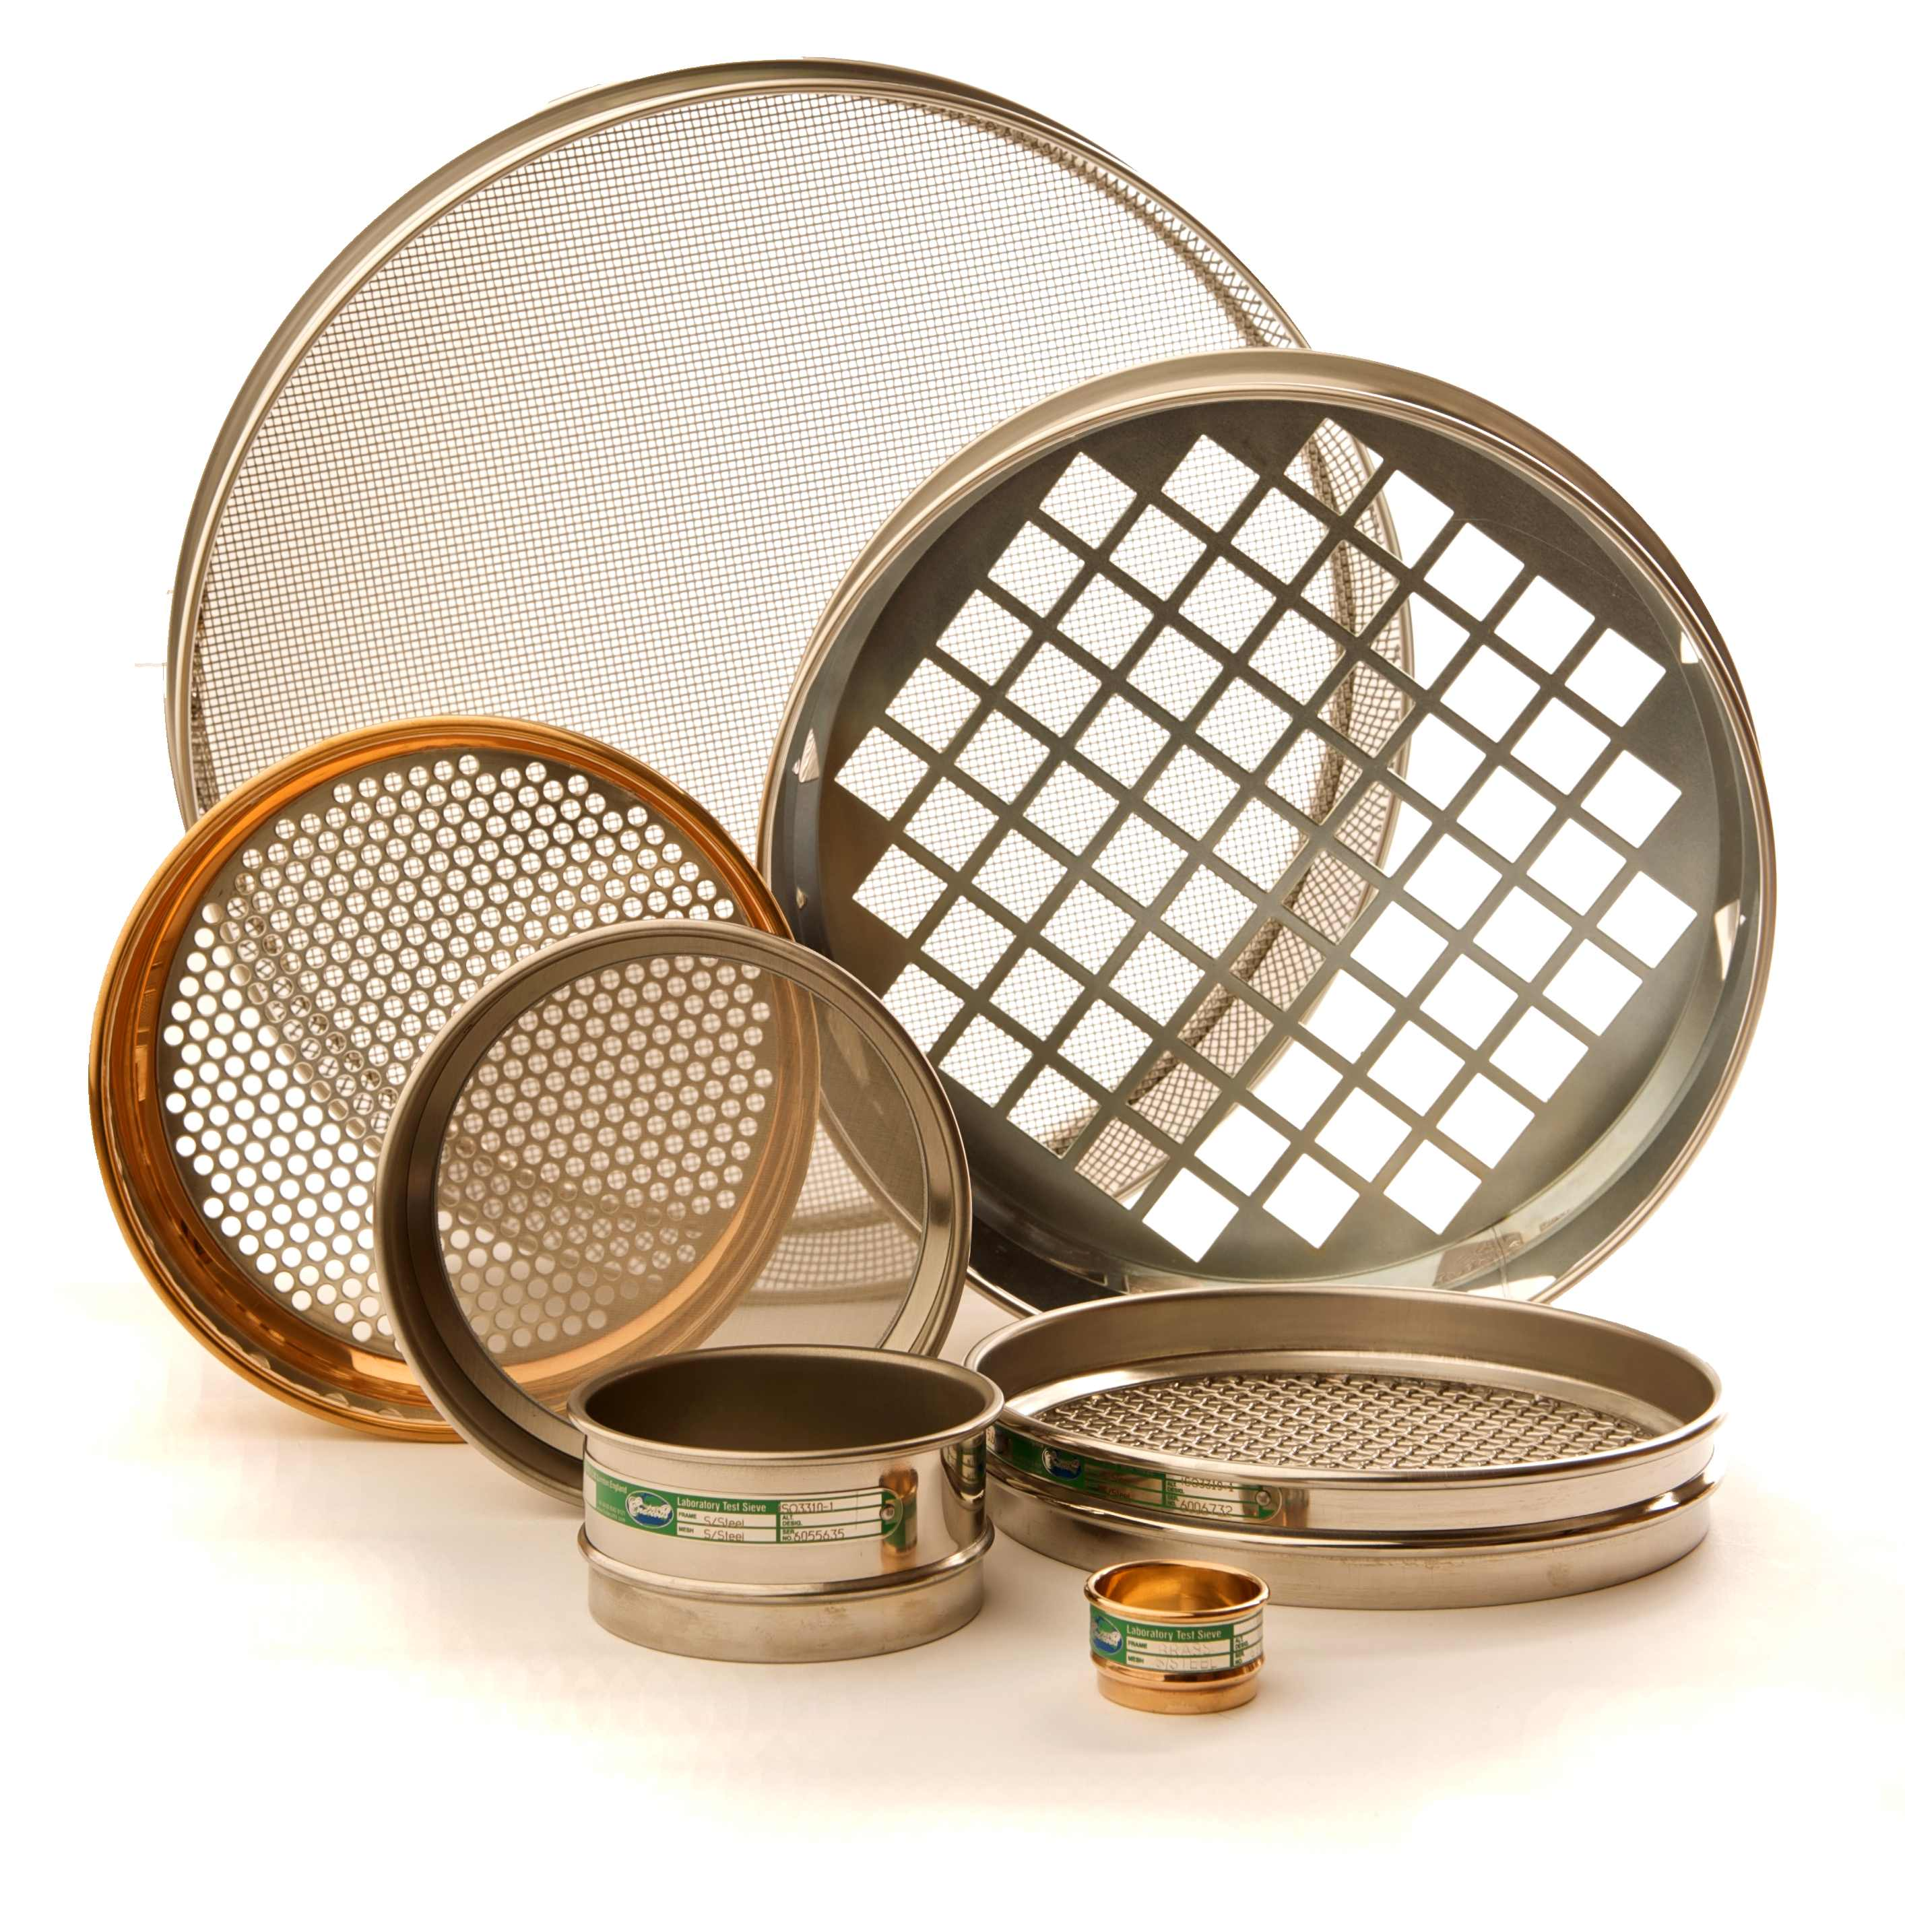 Endecotts Woven Wire Mesh Sieves